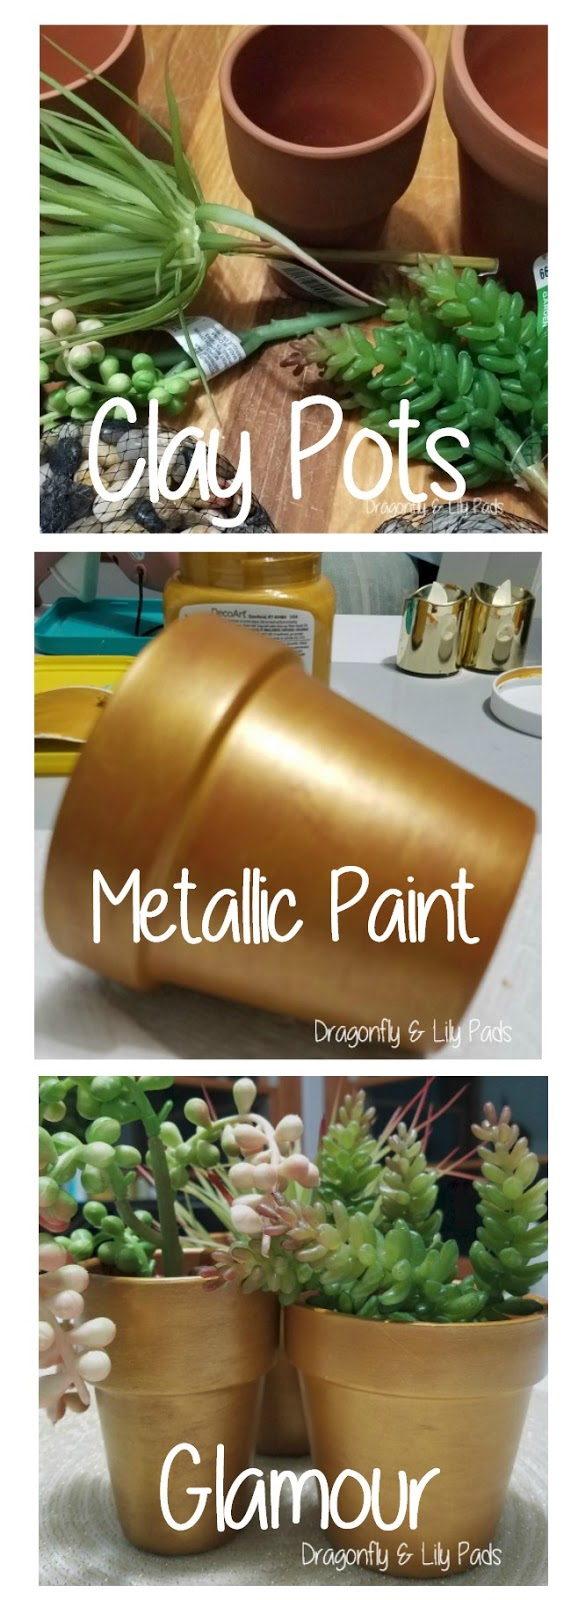 Pinterest Image of Steps to make Clay Pots Glamour style